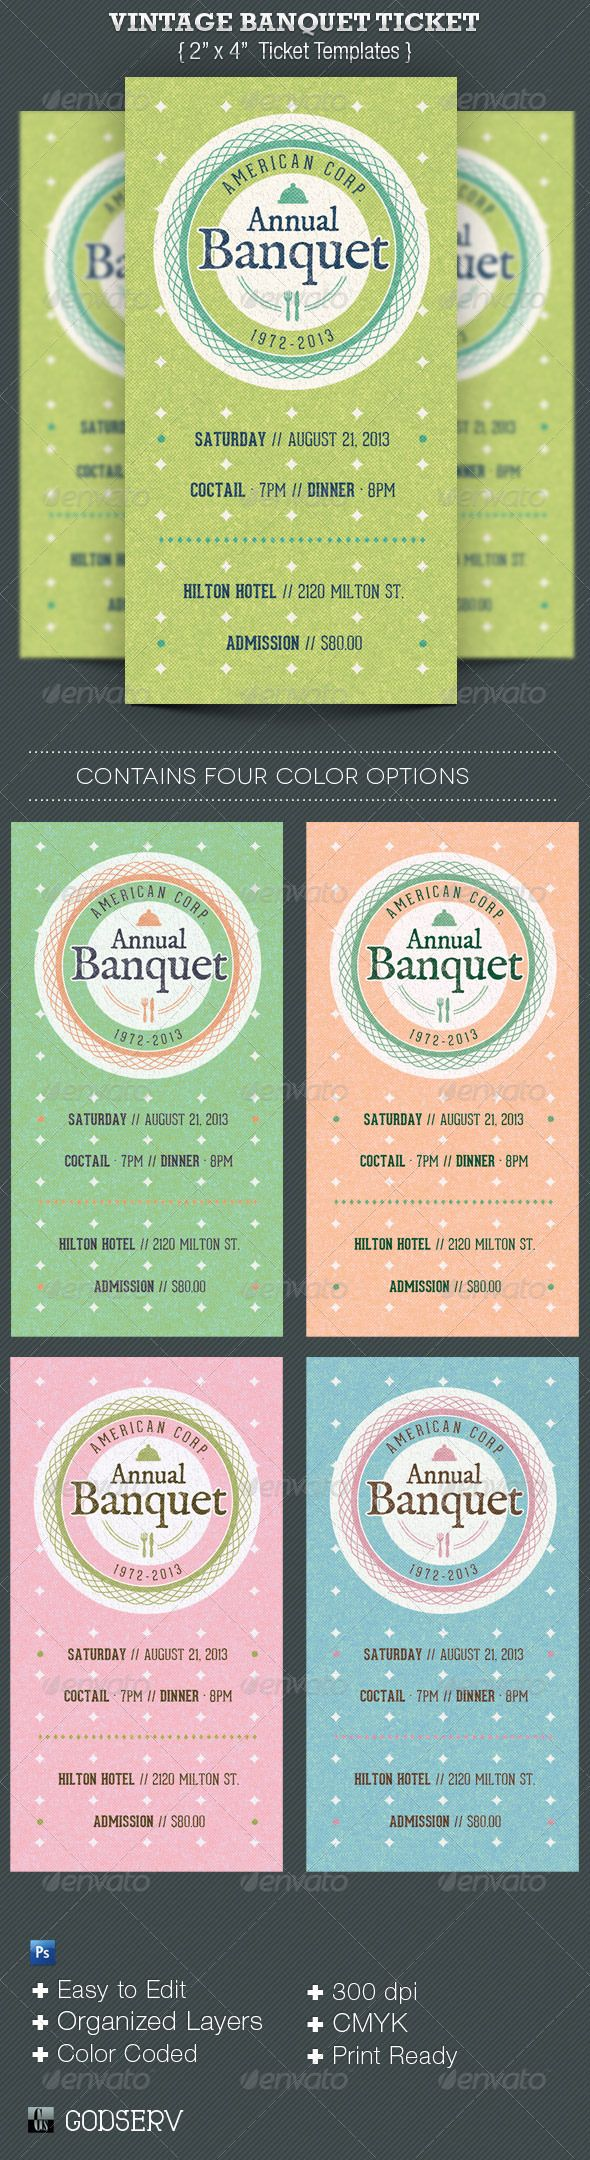 8 best images about ticket template on pinterest free tickets